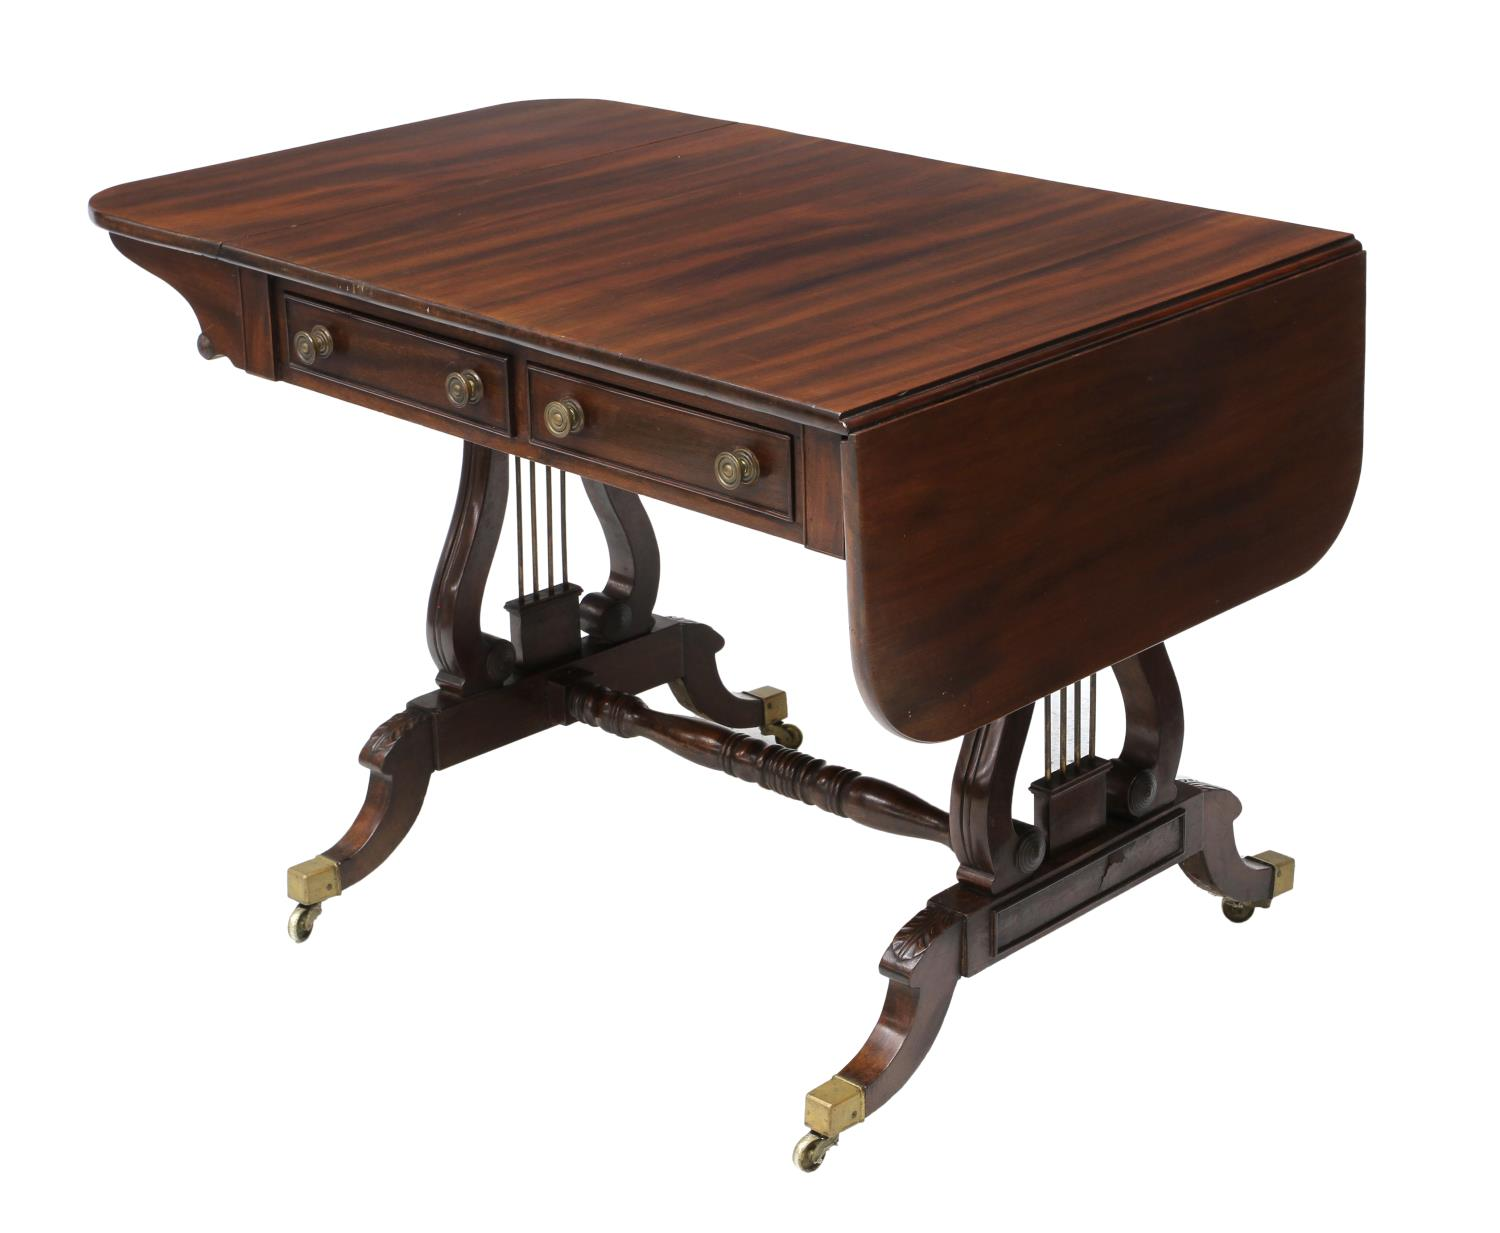 REGENCY MAHOGANY LYRE SUPPORTED DROP LEAF TABLE The  : 100 from www.austinauction.com size 1500 x 1233 jpeg 94kB